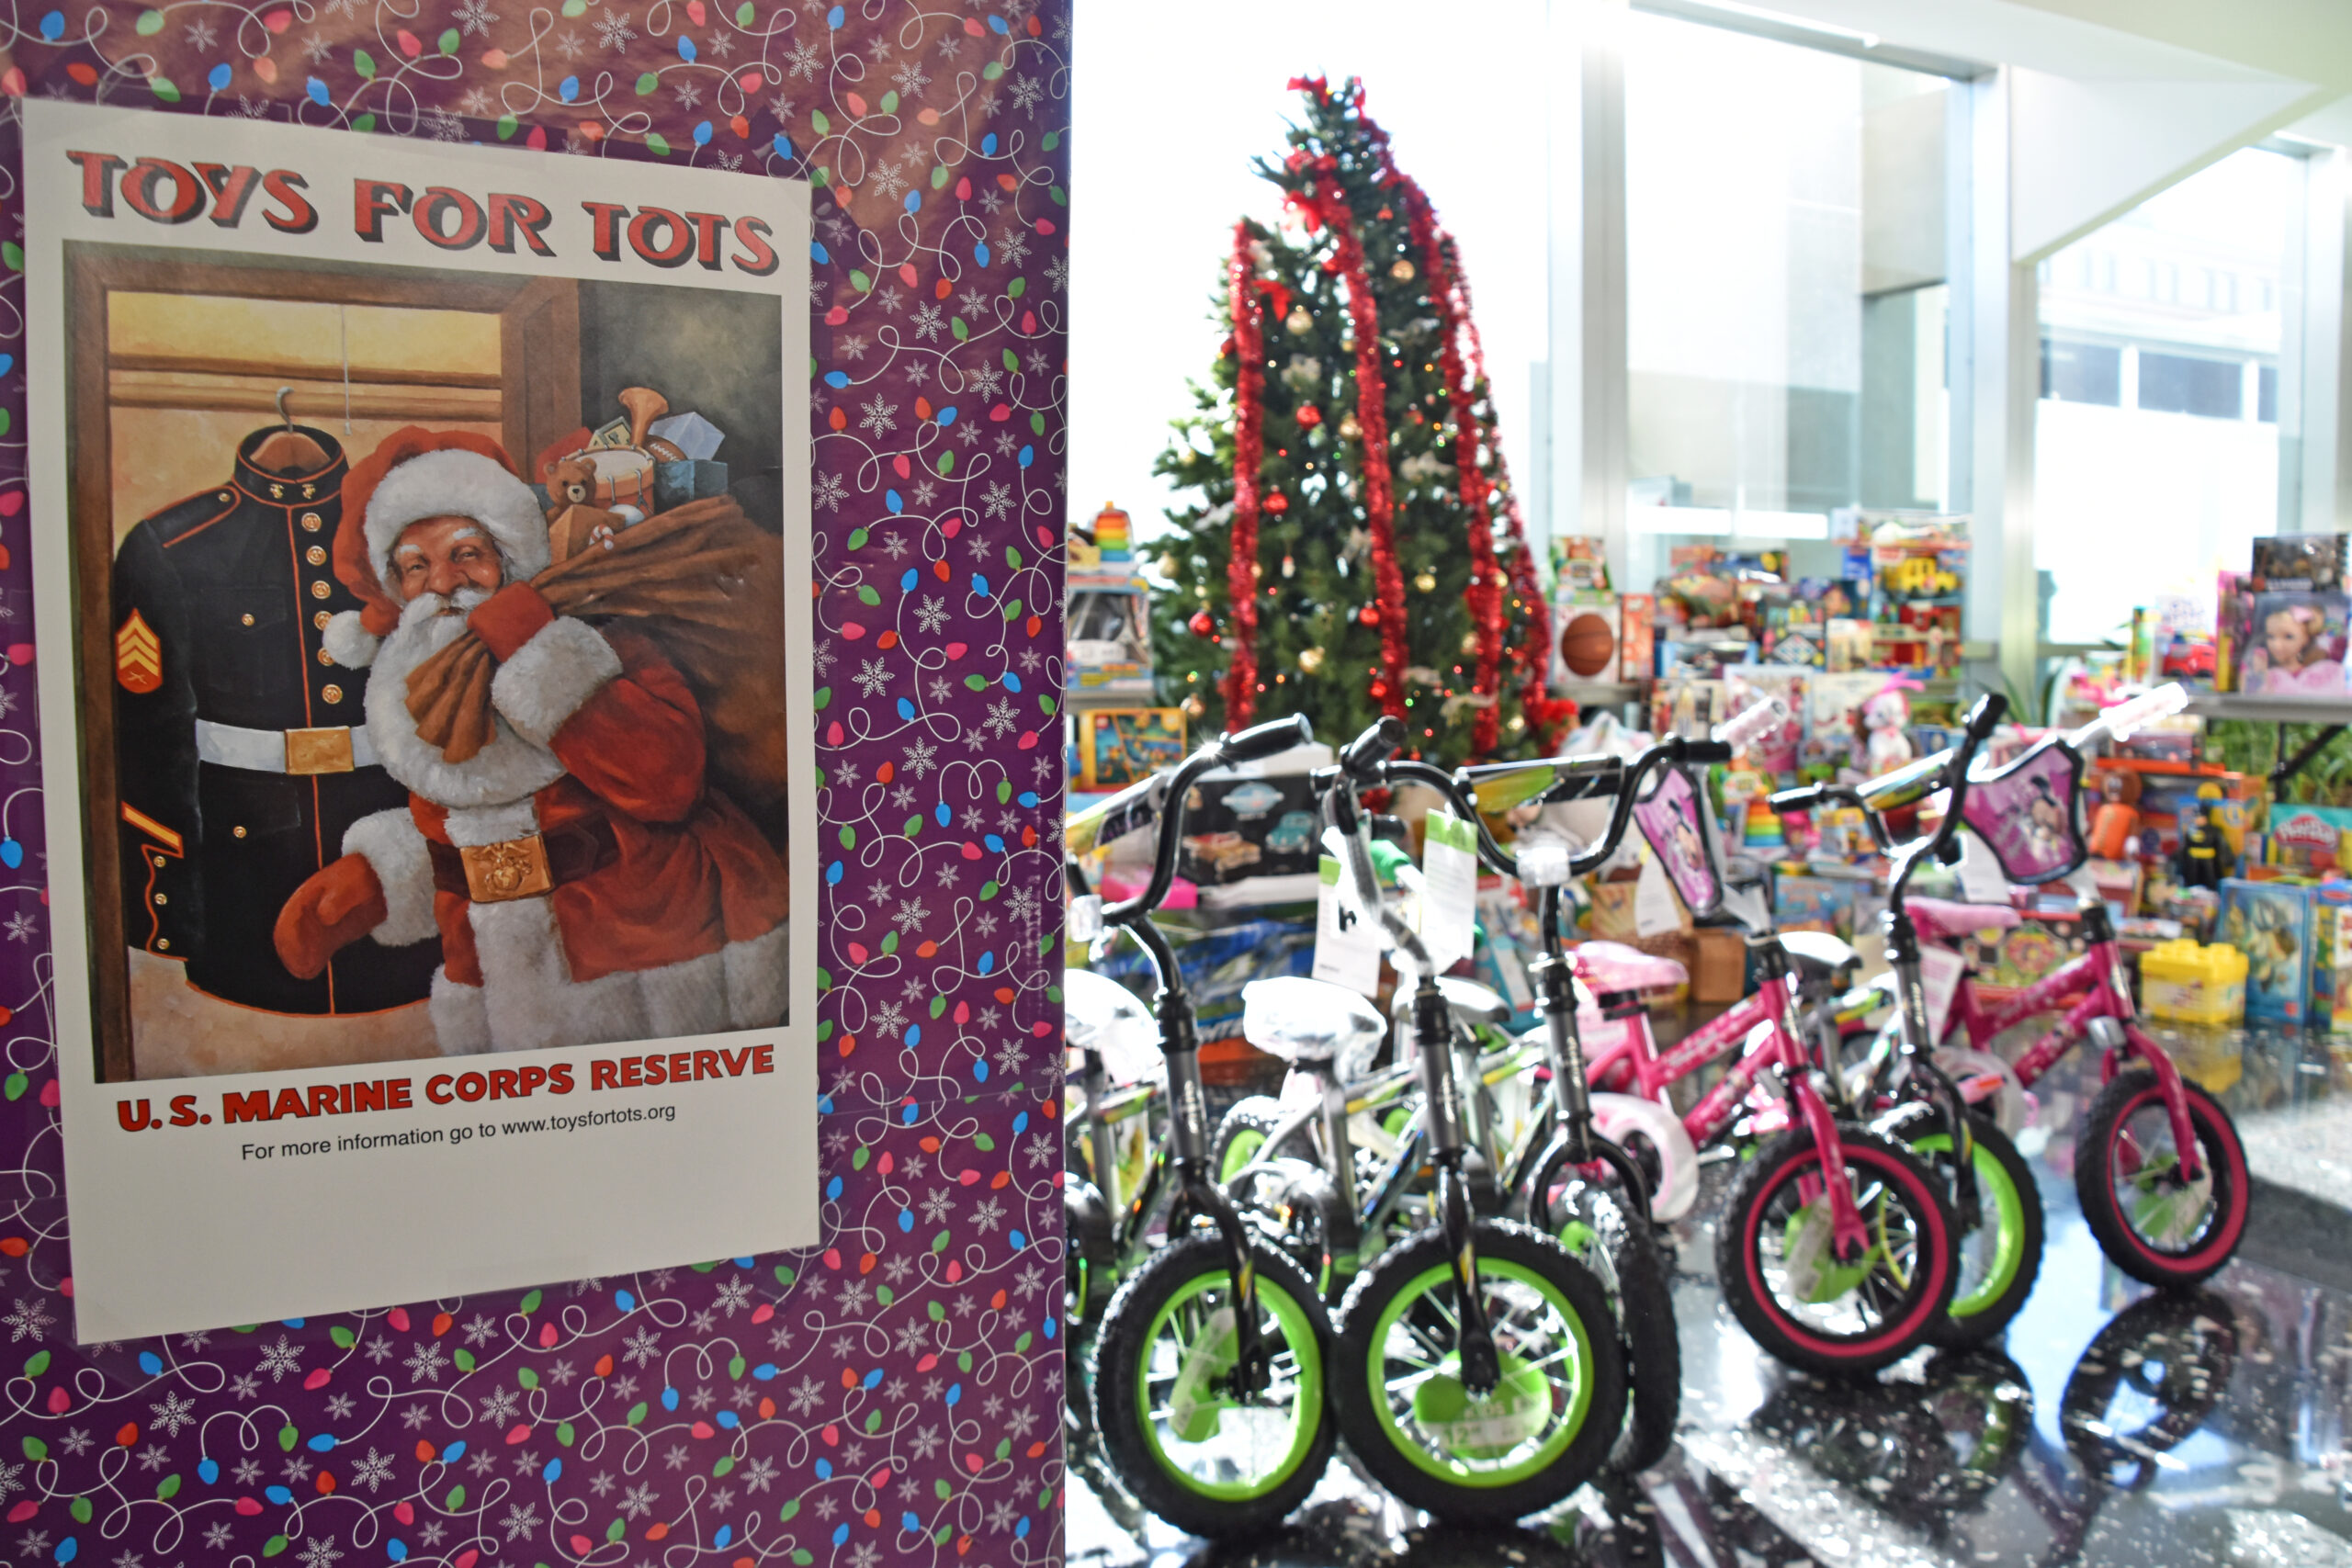 Toys wait patiently in the lobby of the Department of State Harry S Truman Building before DSS uniformed guards pack and deliver them to the USMC as part of its Toys for Tots program, December 17, 2020. (U.S. Department of State photo)